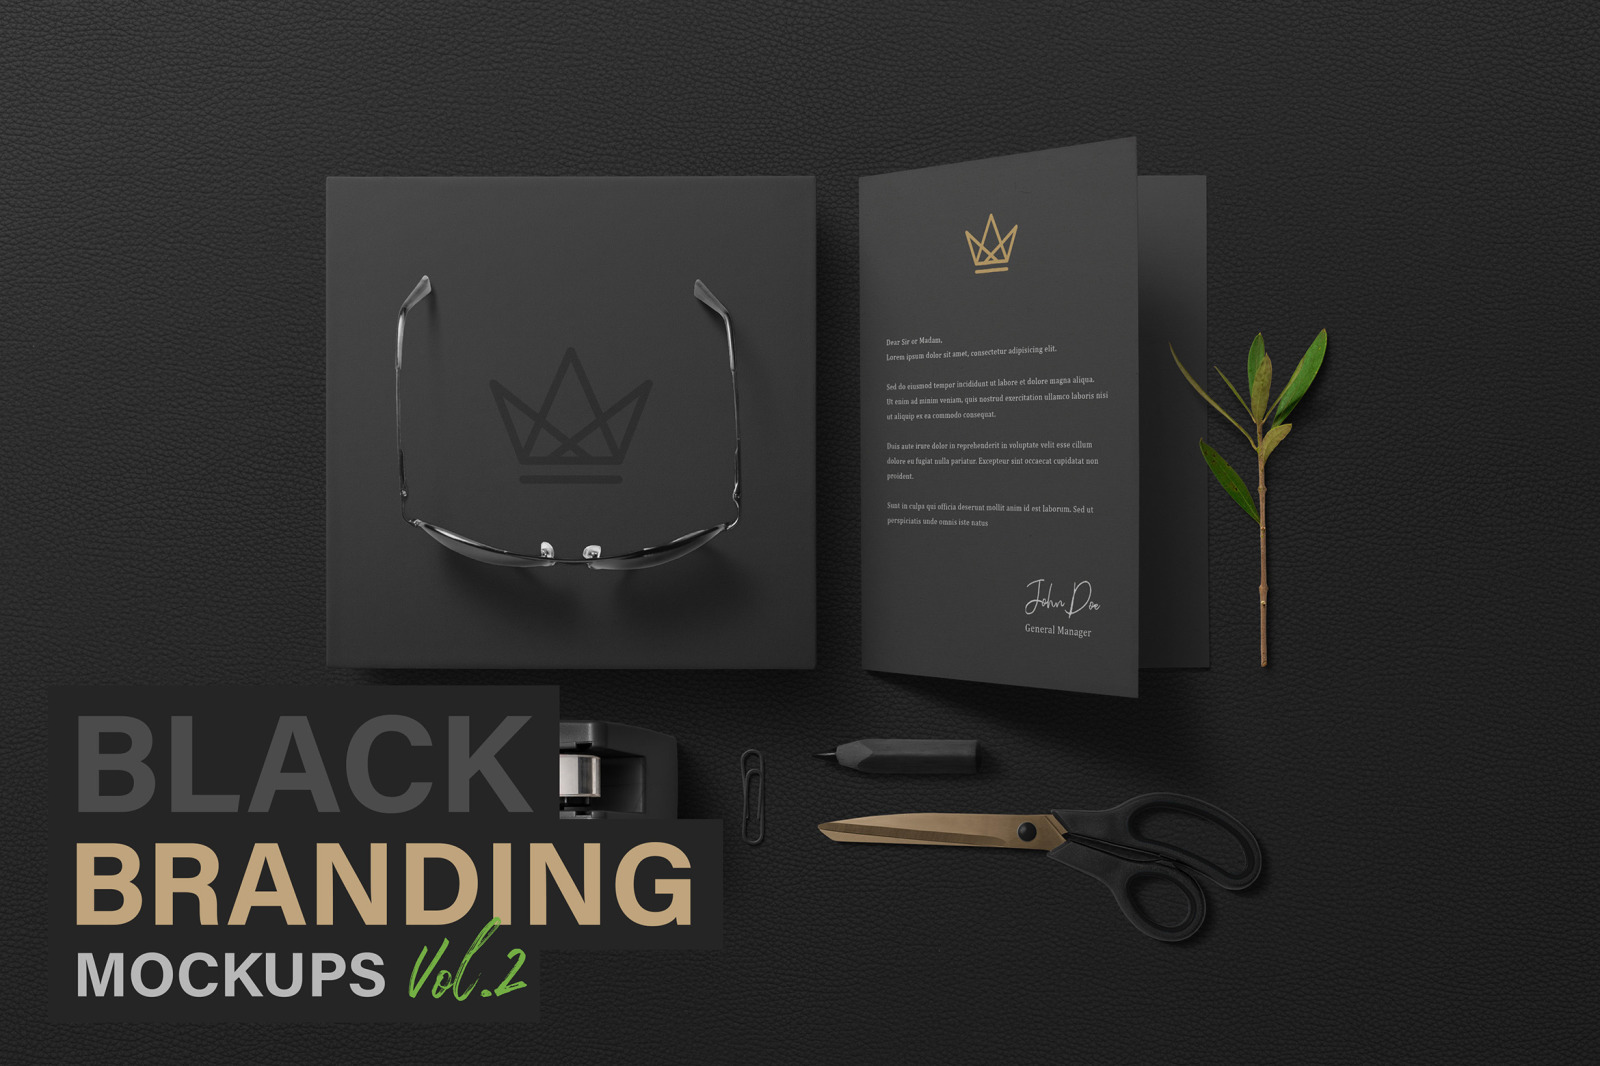 Black Branding Mockups Vol 2 In Stationery Mockups On Yellow